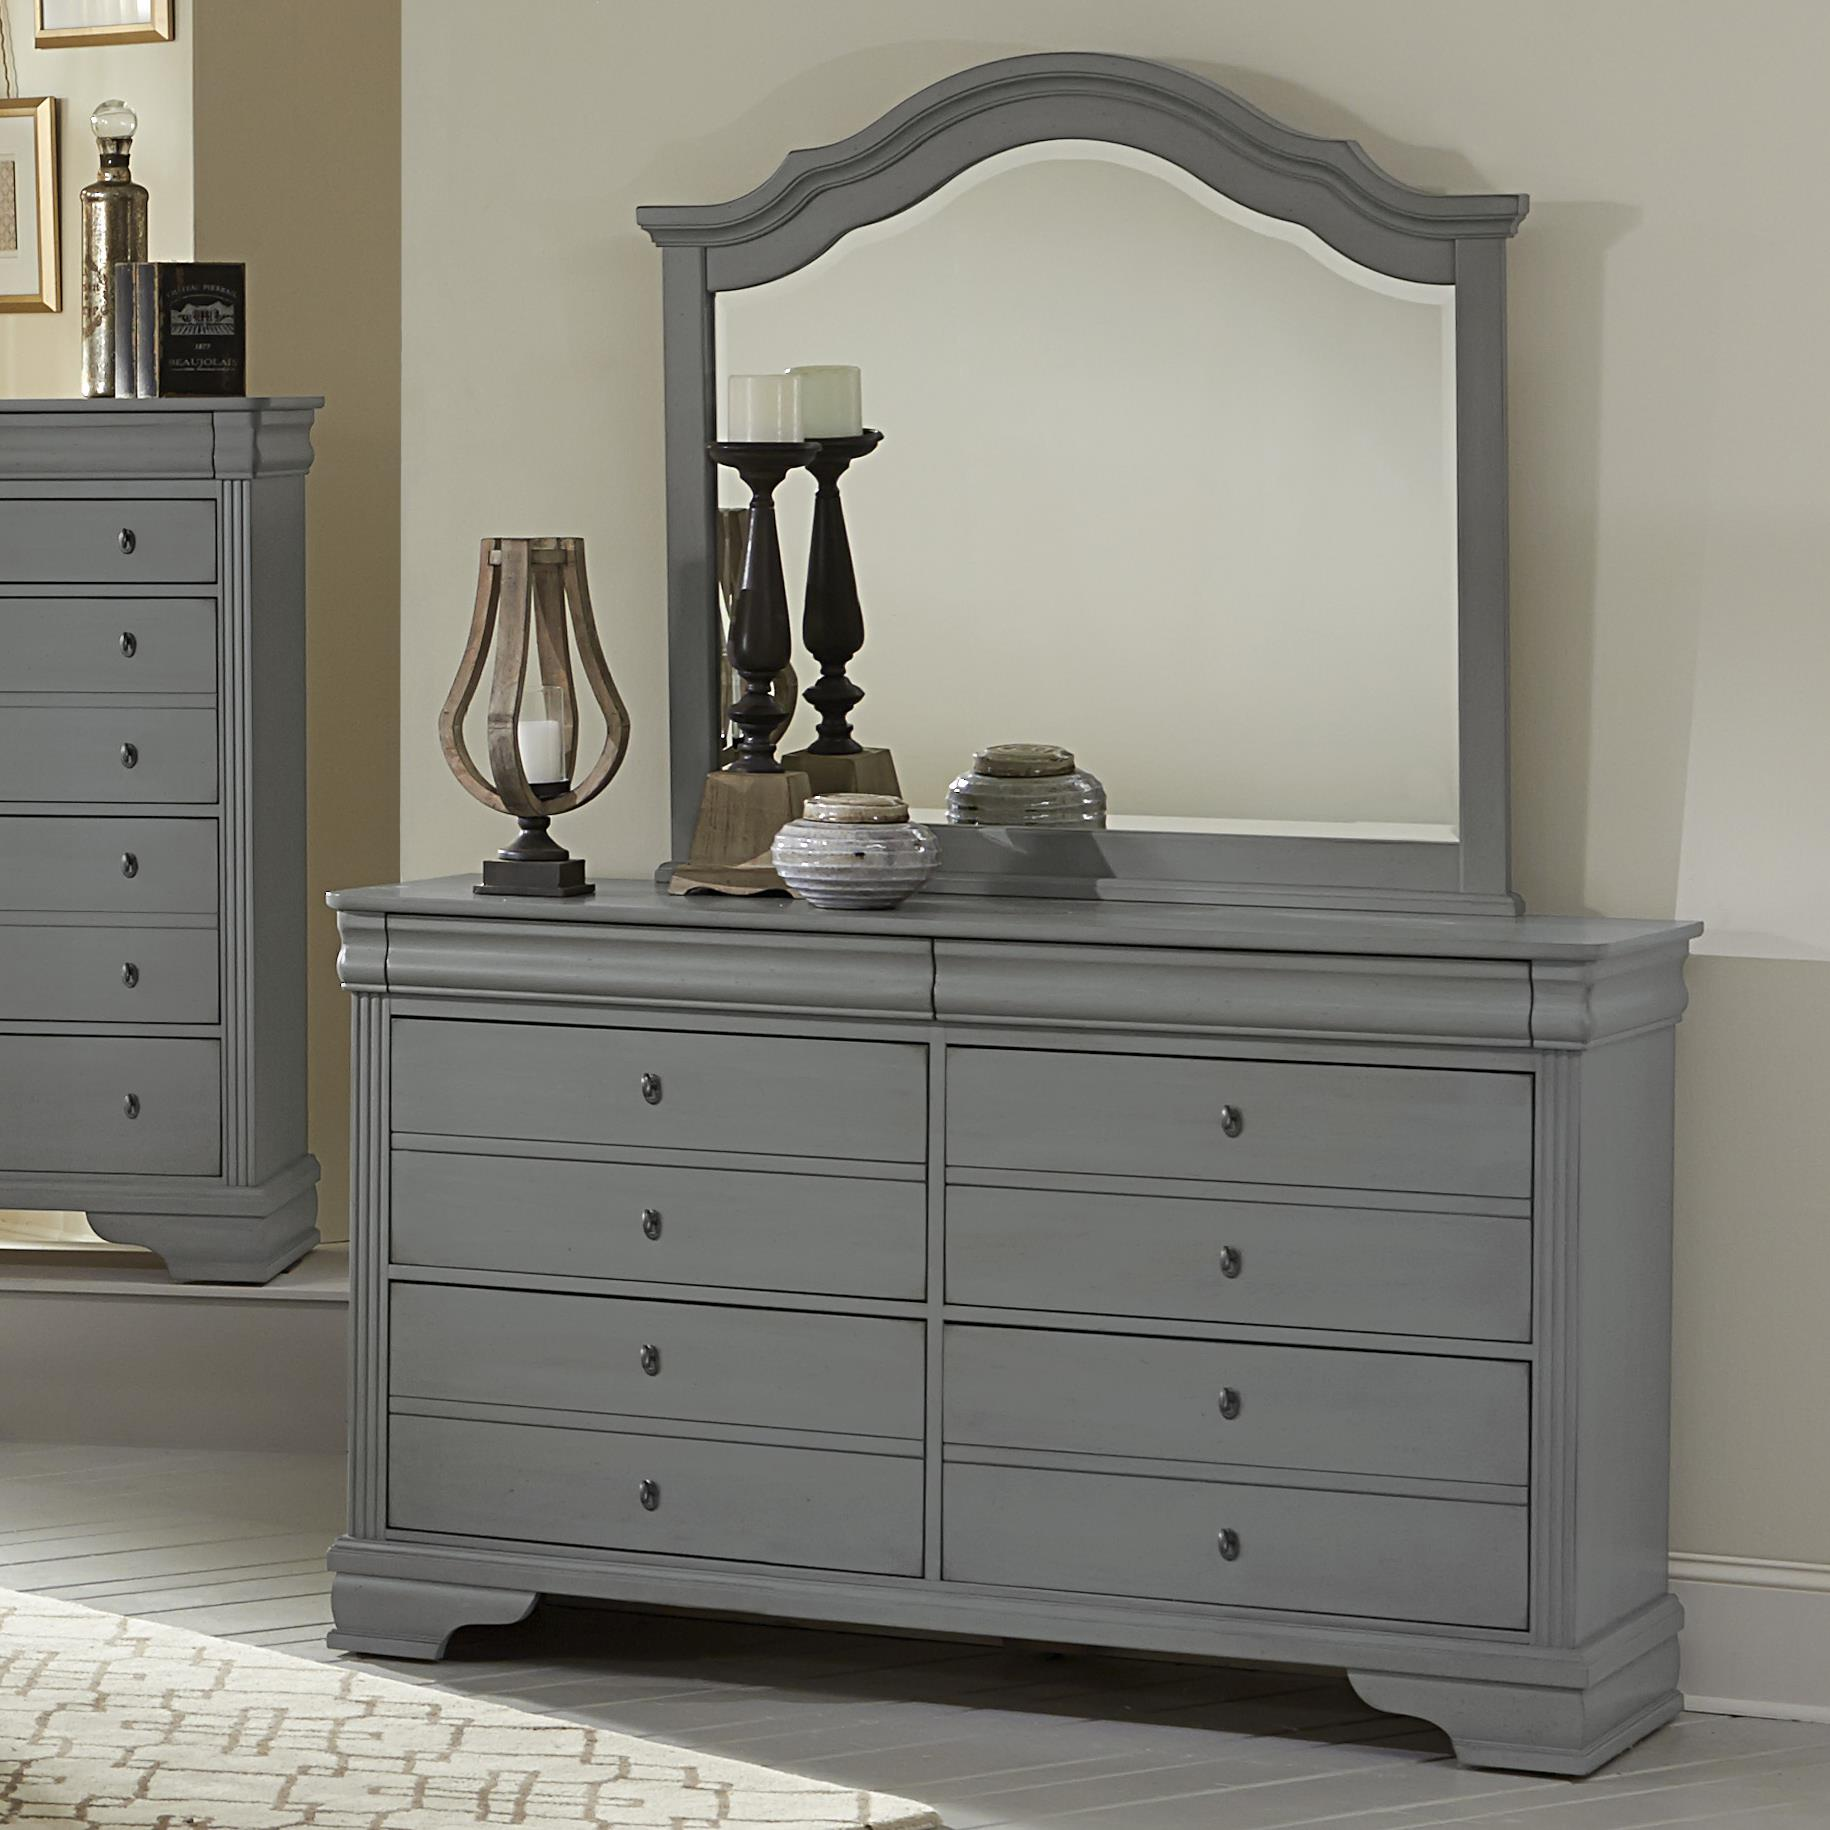 Vaughan Bassett French Market Dresser & Arched Mirror - Item Number: 381-002+447